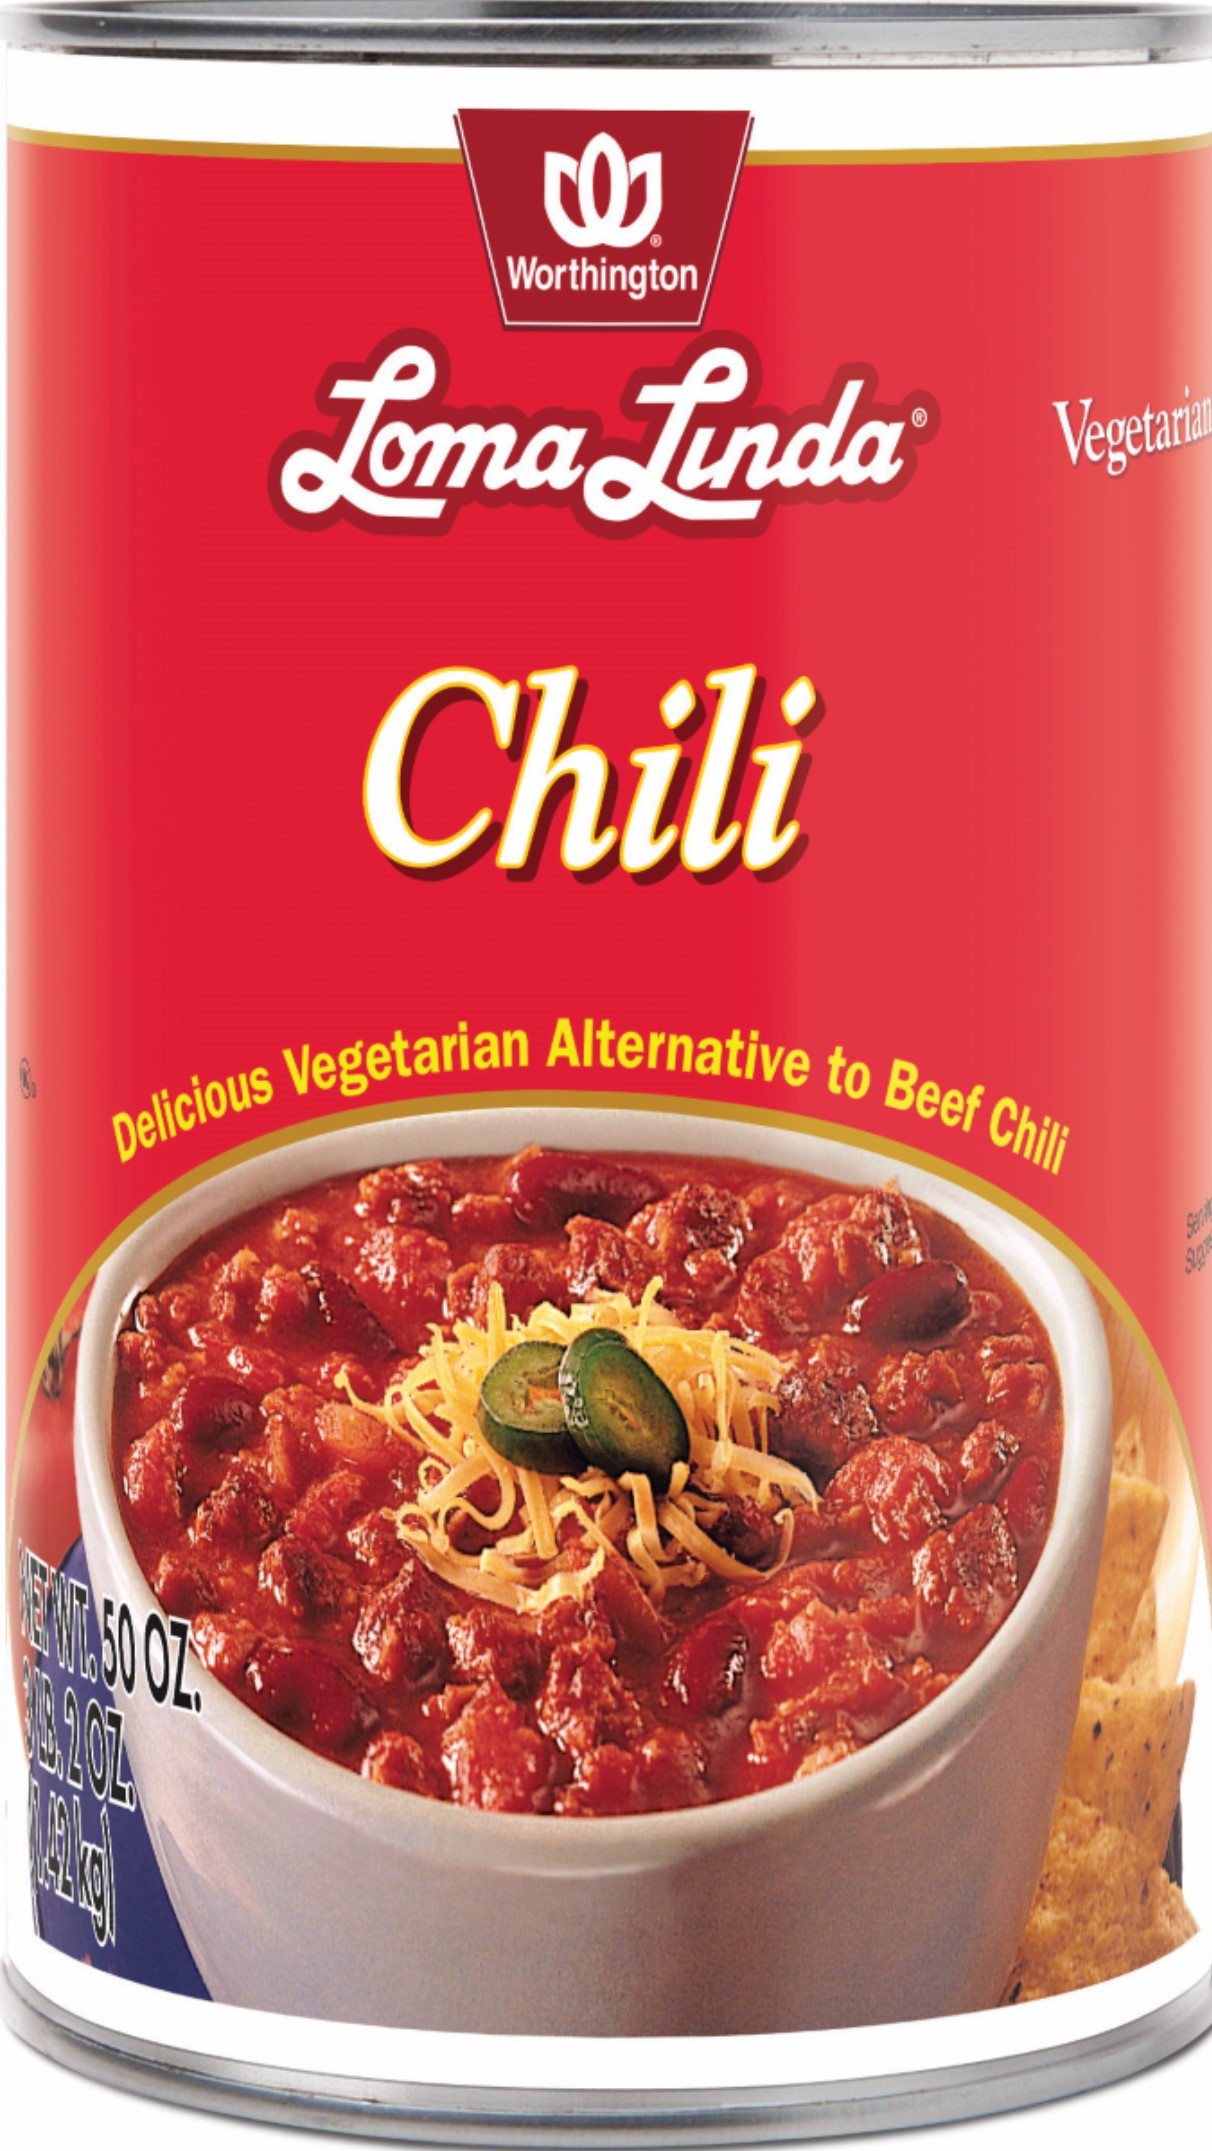 CHILI WR FAMILY SIZE,WORTHINGTON,00052